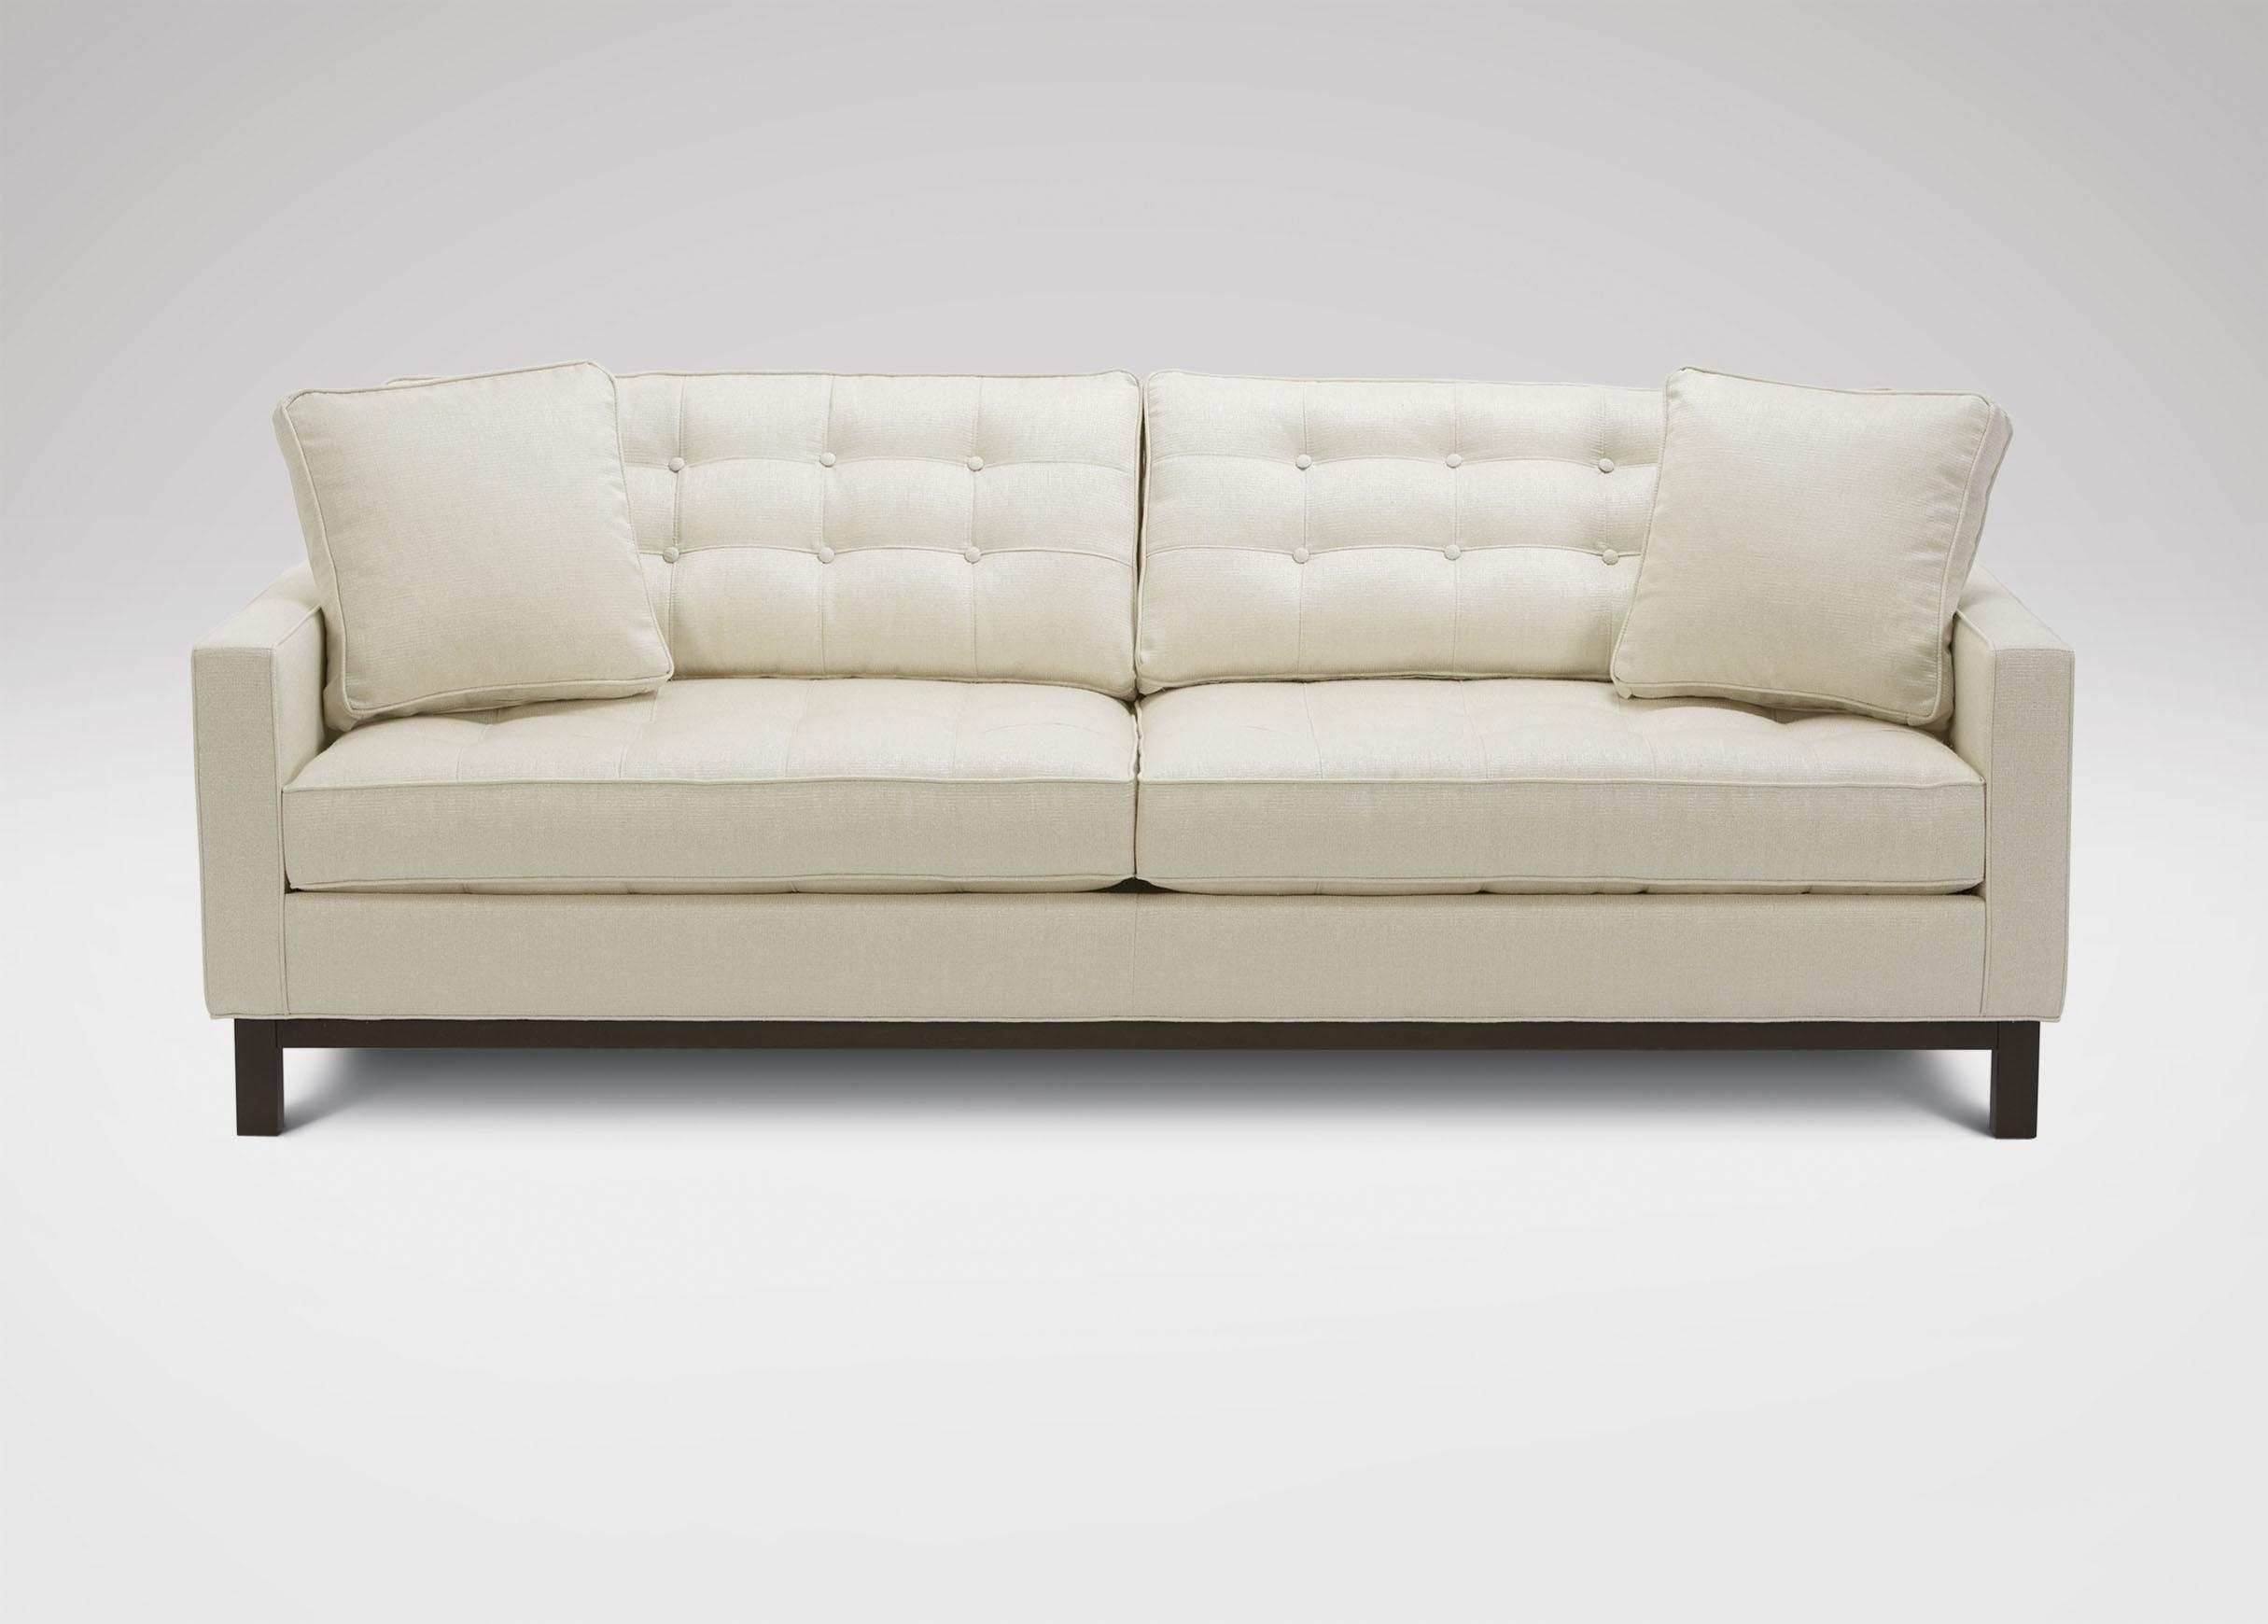 Melrose Sofa | Sofas & Loveseats Pertaining To Ethan Allen Chesterfield Sofas (Image 9 of 20)